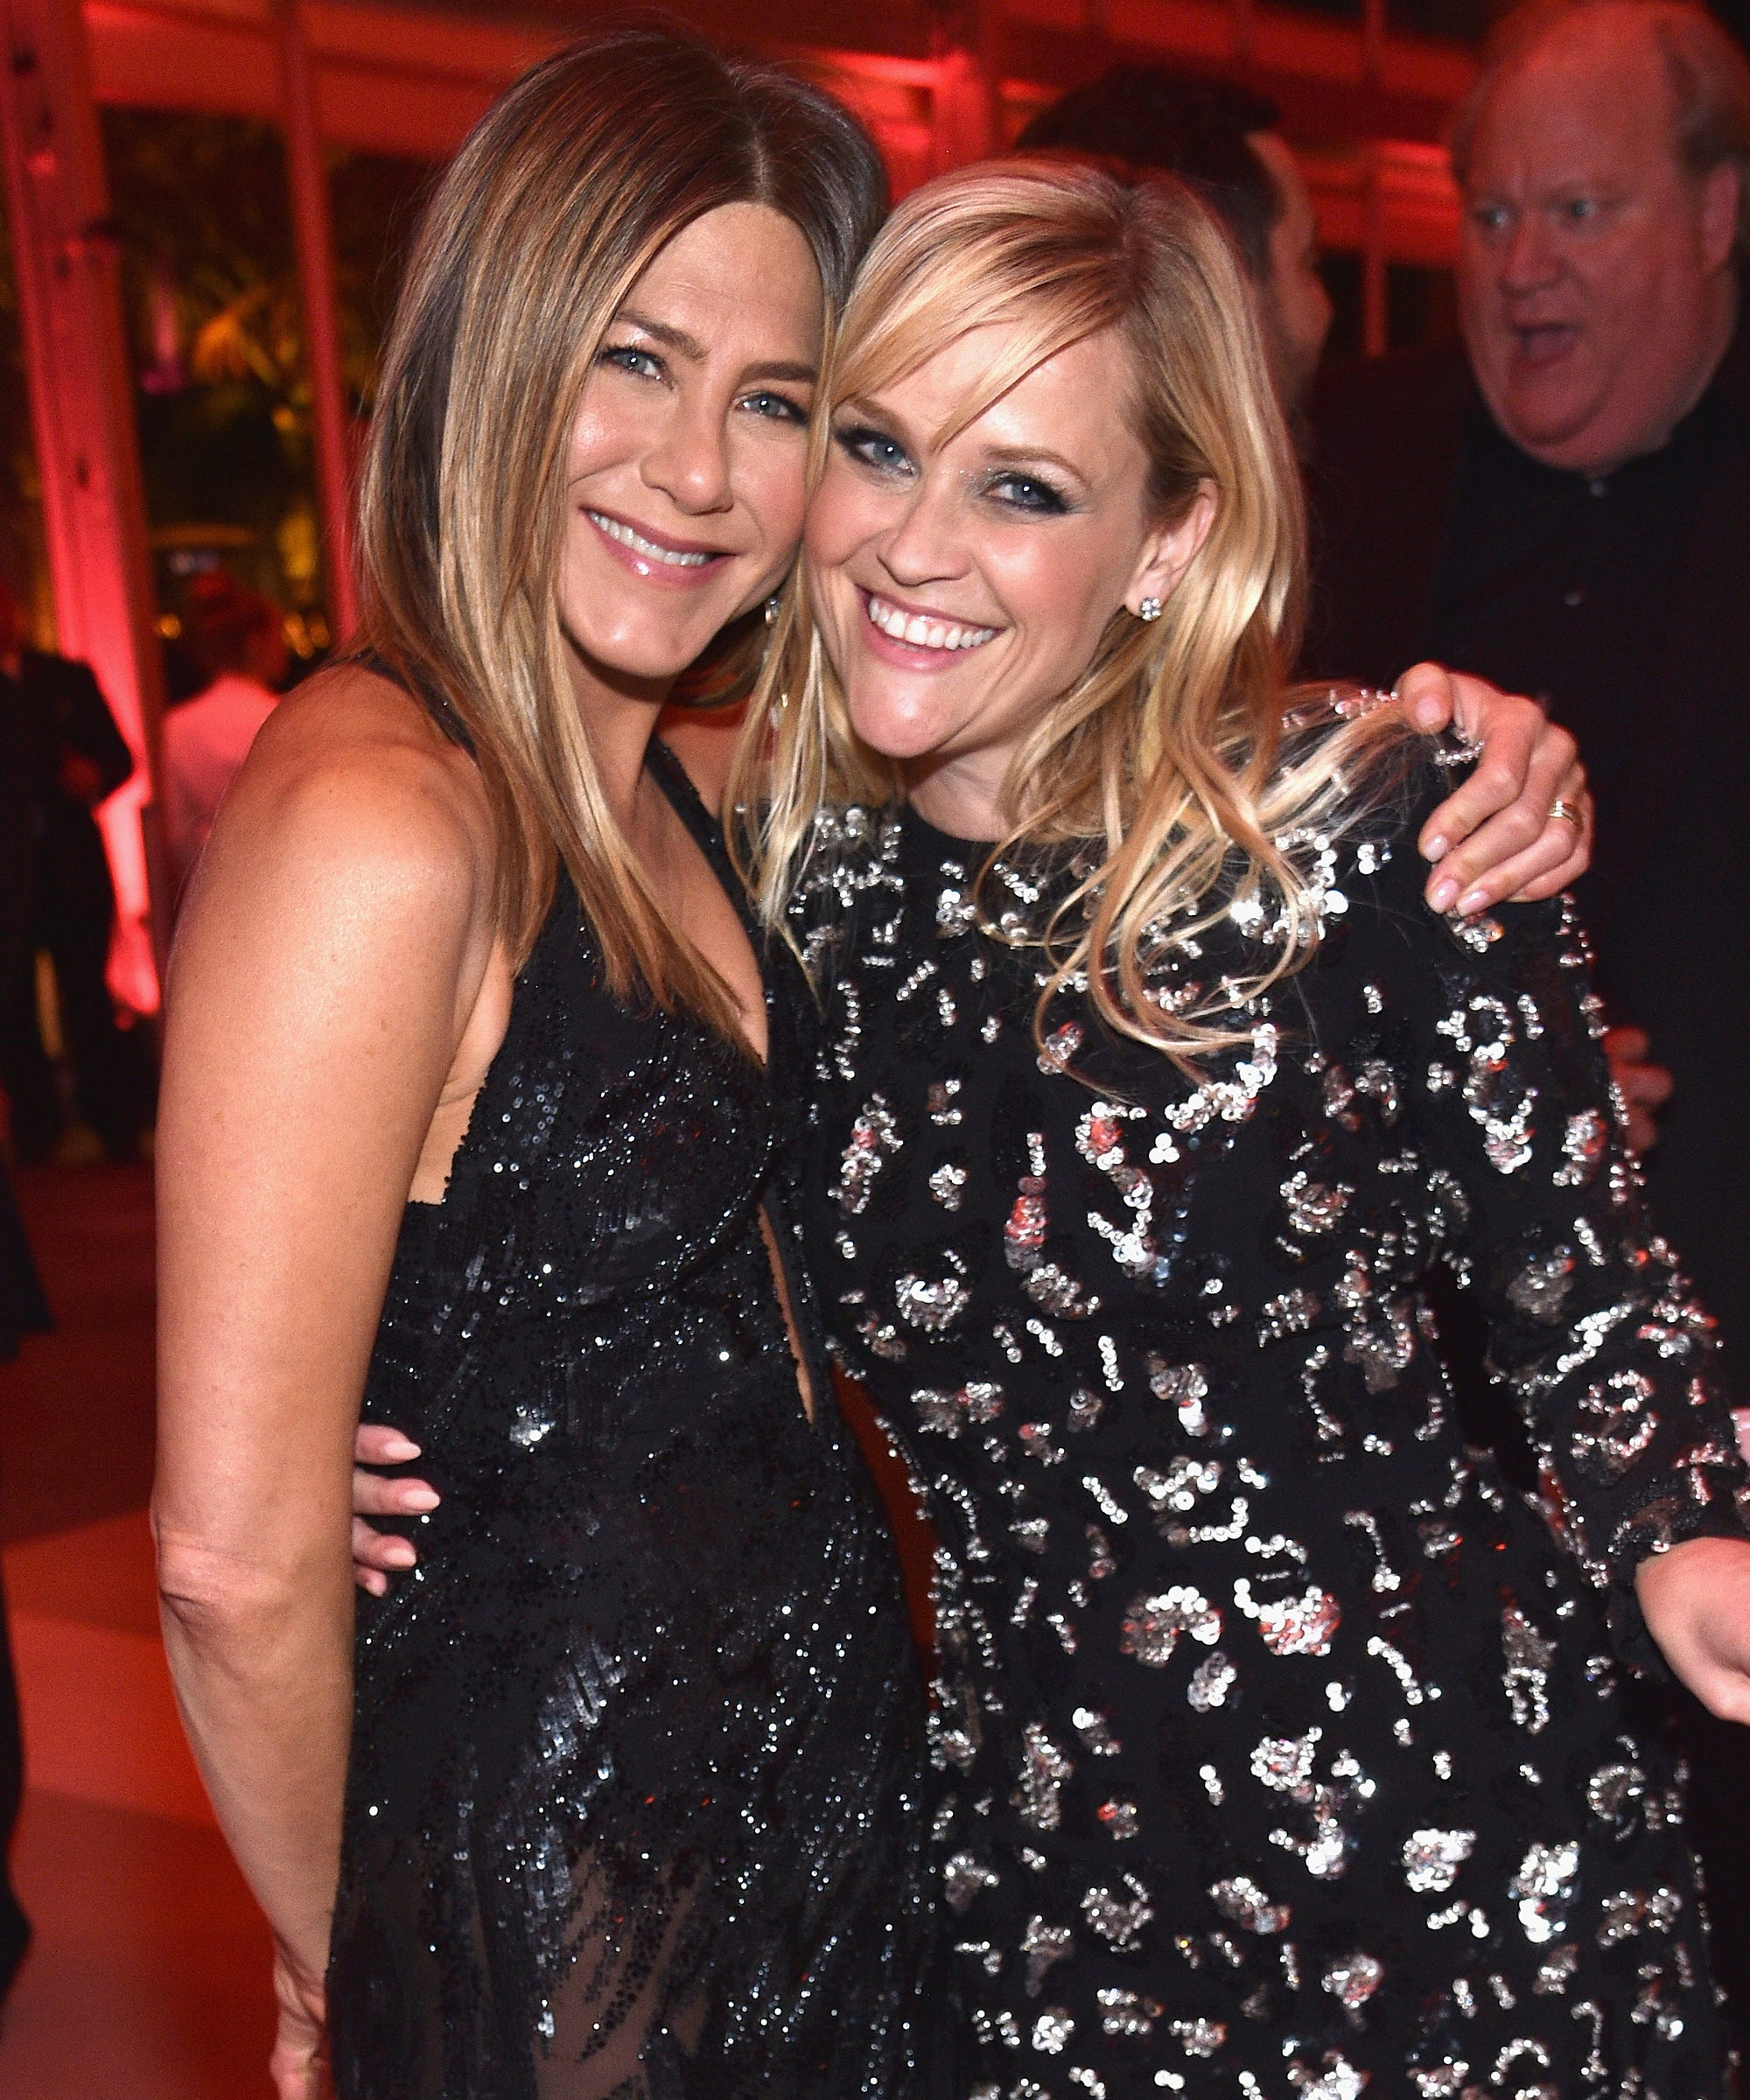 Reese Witherspoon & Jennifer Aniston Compete For The Spotlight In The Morning Show Trailer